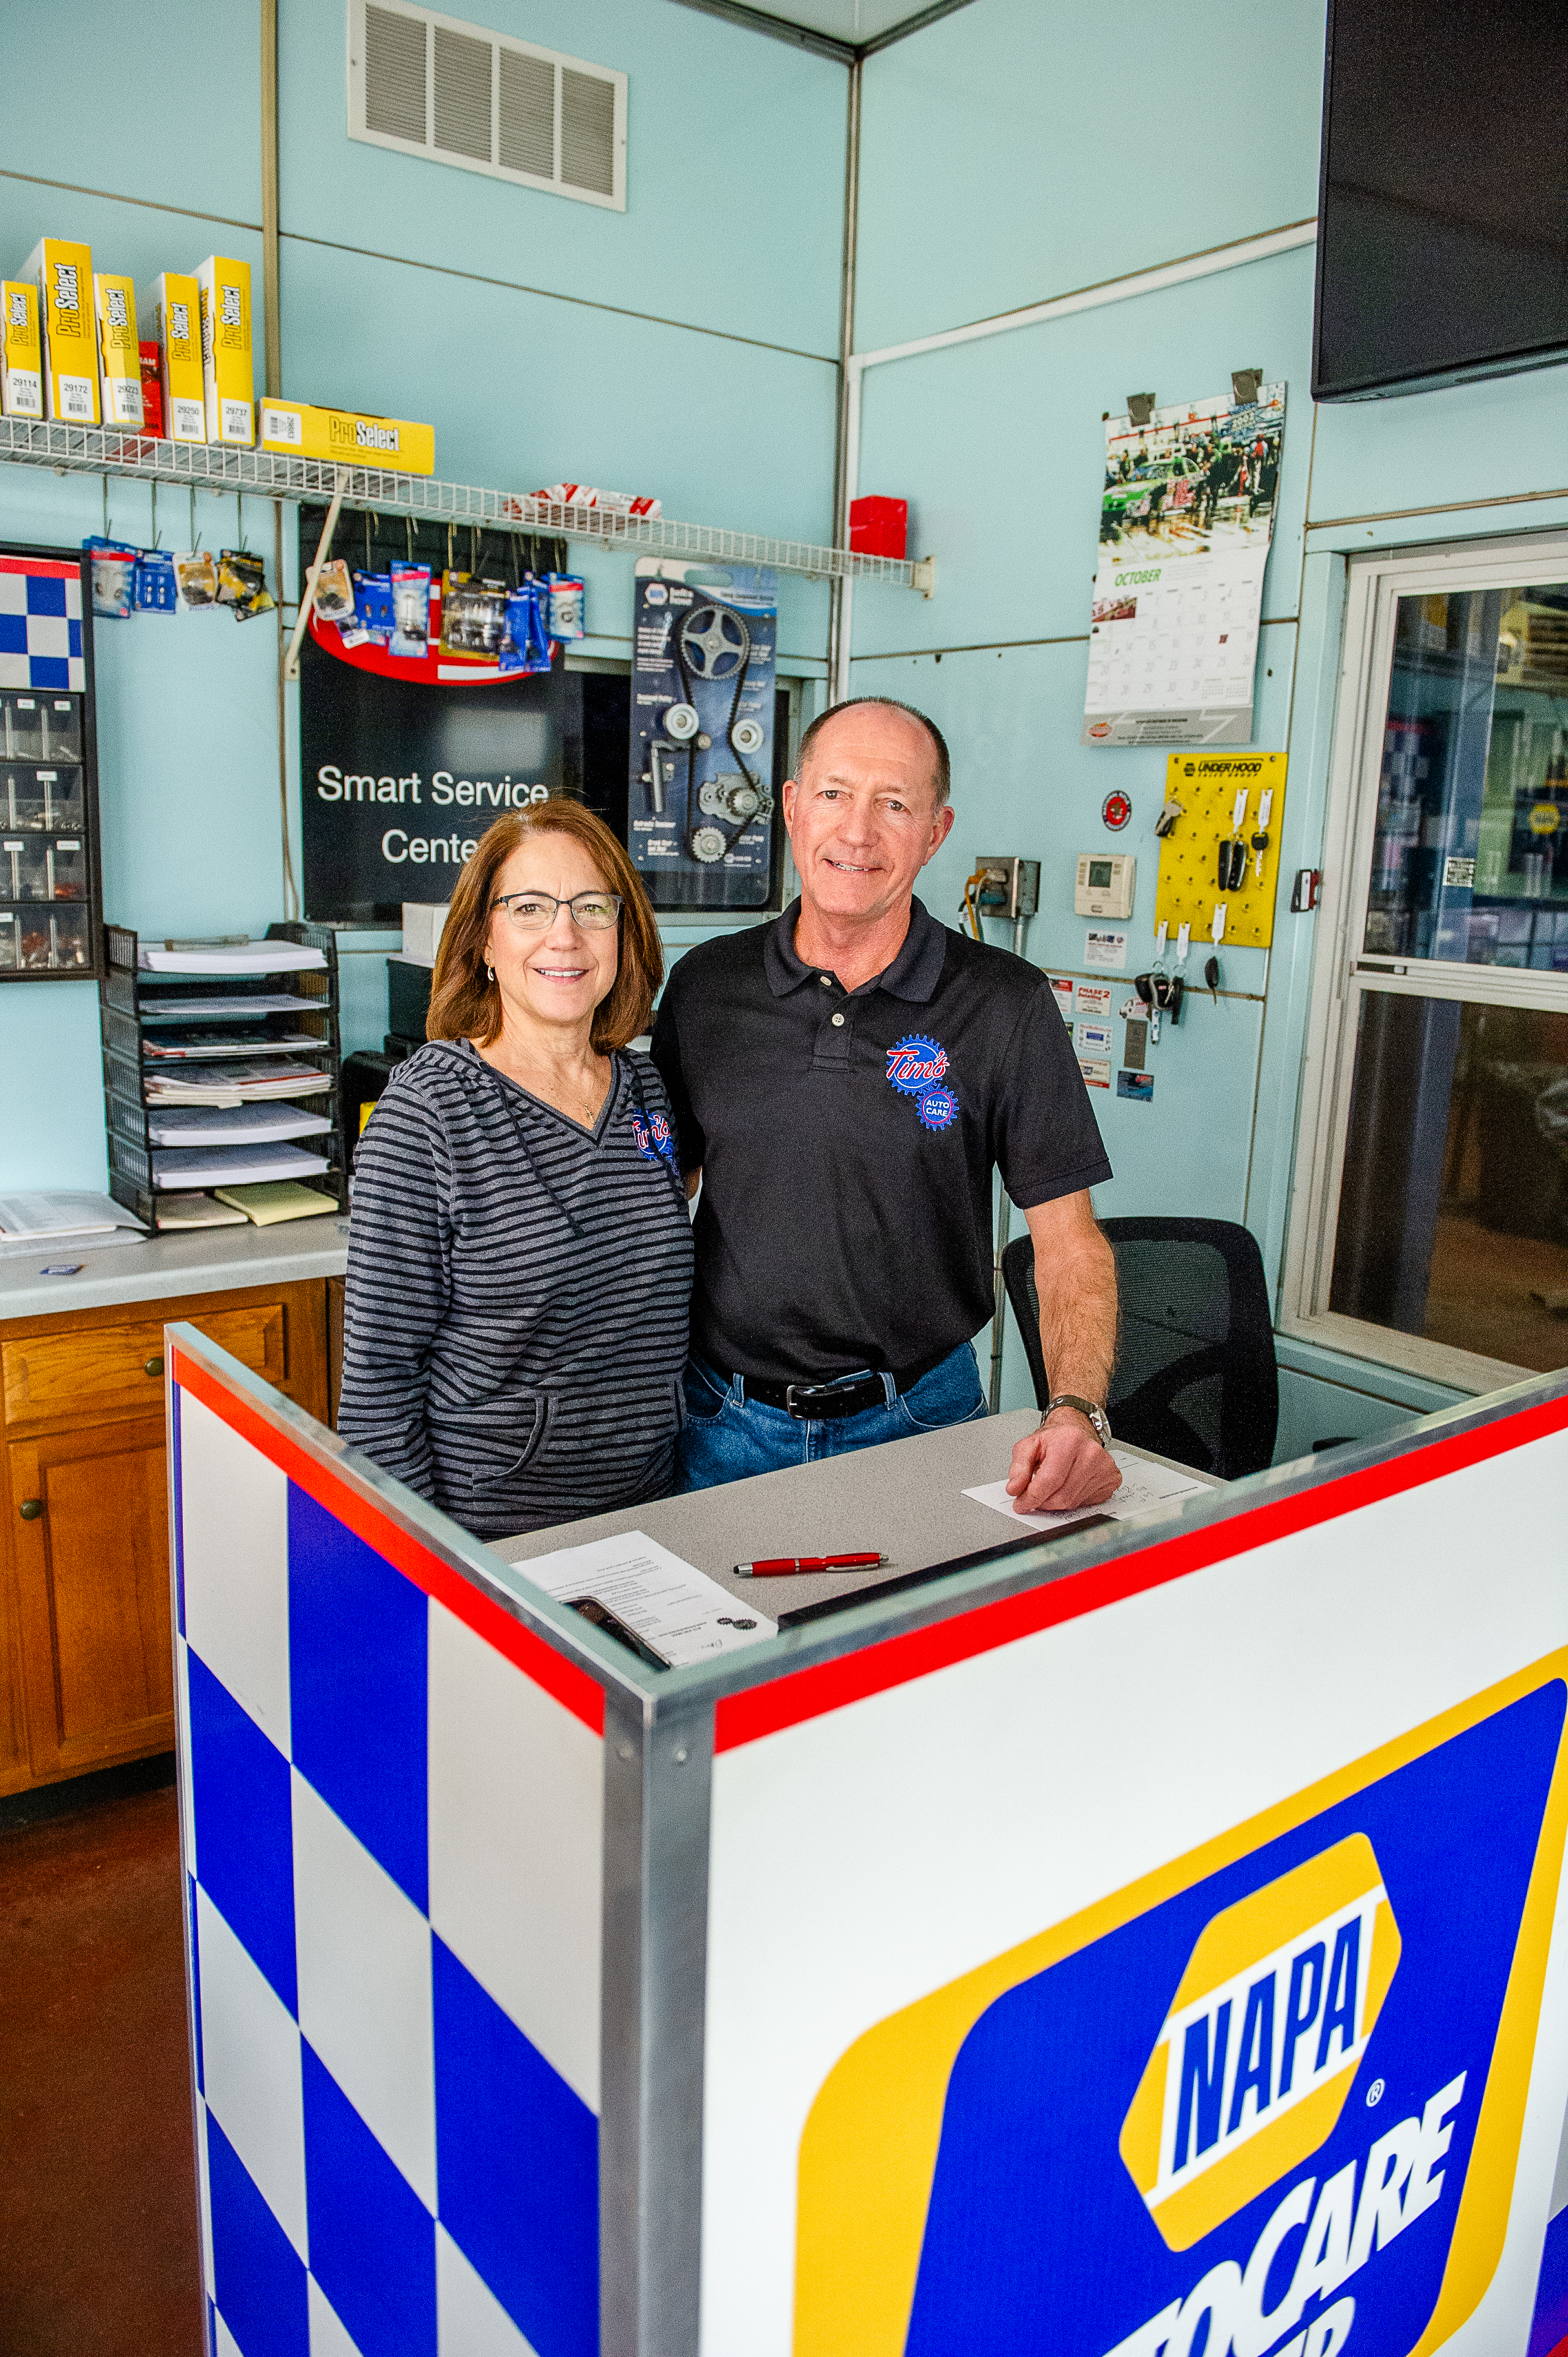 auto repair and tires at Tim's Auto Care